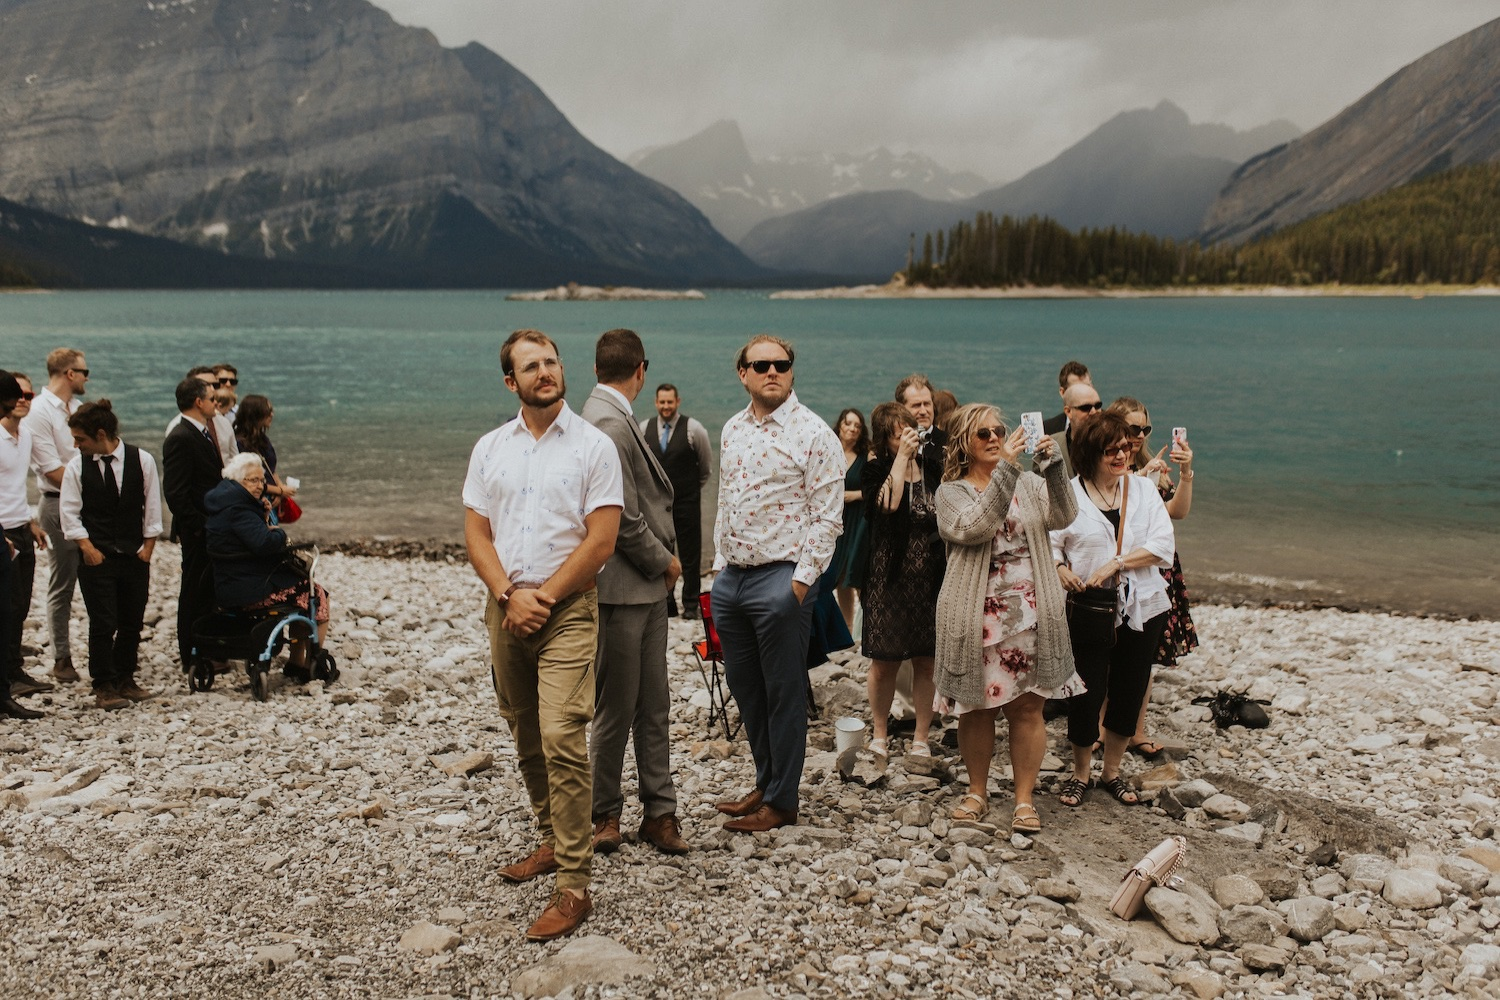 Private Elopement Ceremony at Upper Kananaskis Lake in Banff National Park, Banff National Park Private Elopement Ceremony, Elopement Ceremony in Banff National Park, Banff National Park Wedding, How to get married in banff national park, banff national park private elopement ceremony, upper kananaskis lake elopement ceremony, banff national park wedding photographer, Banff National Park elopement photographer, Wedding at Upper Kananaskis Lake in Banff National Park